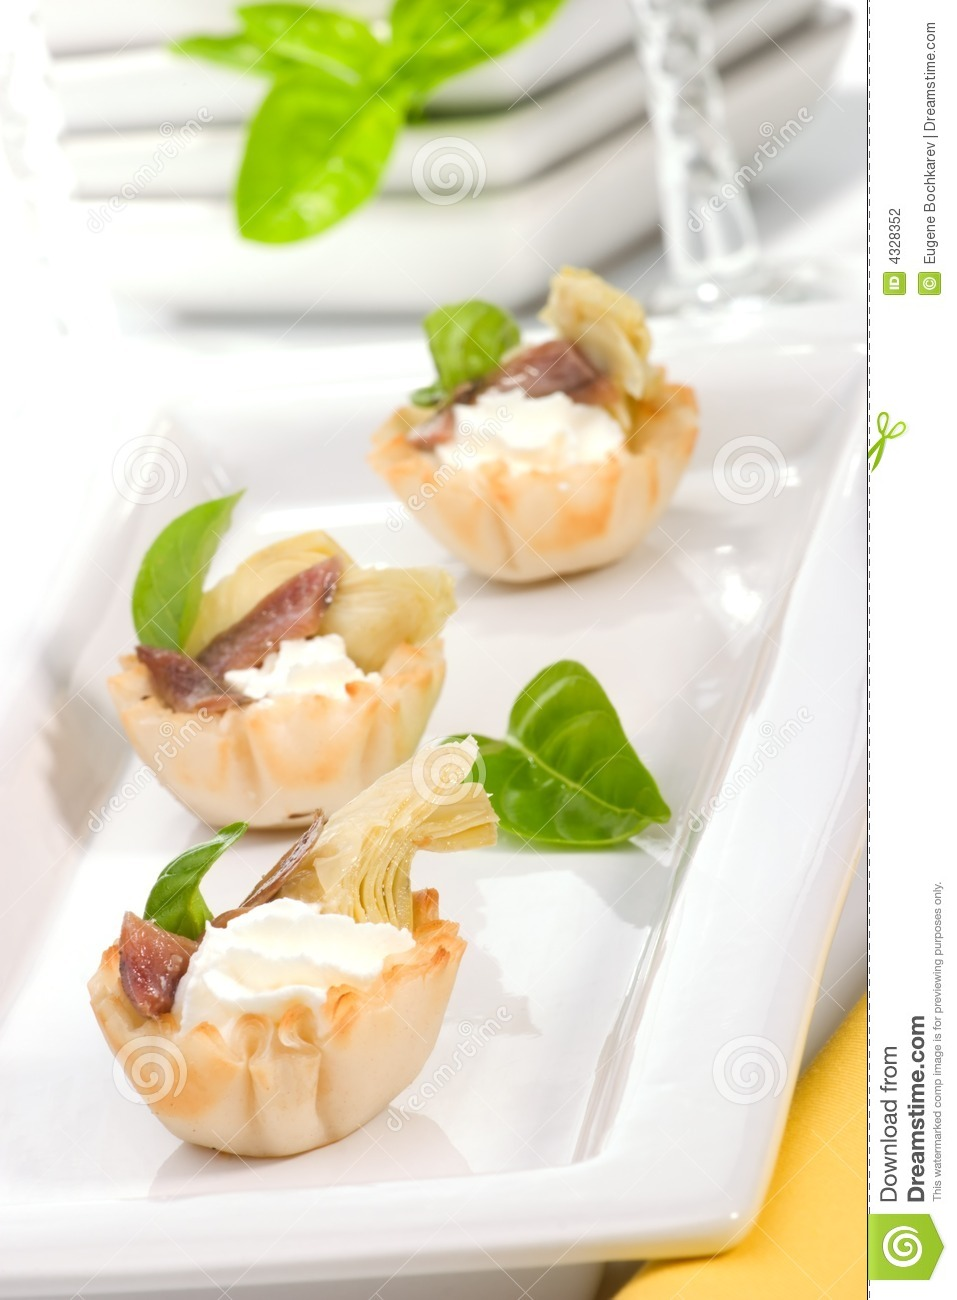 Artichoke anchovy and cream cheese canapes stock photo for Cream cheese canape